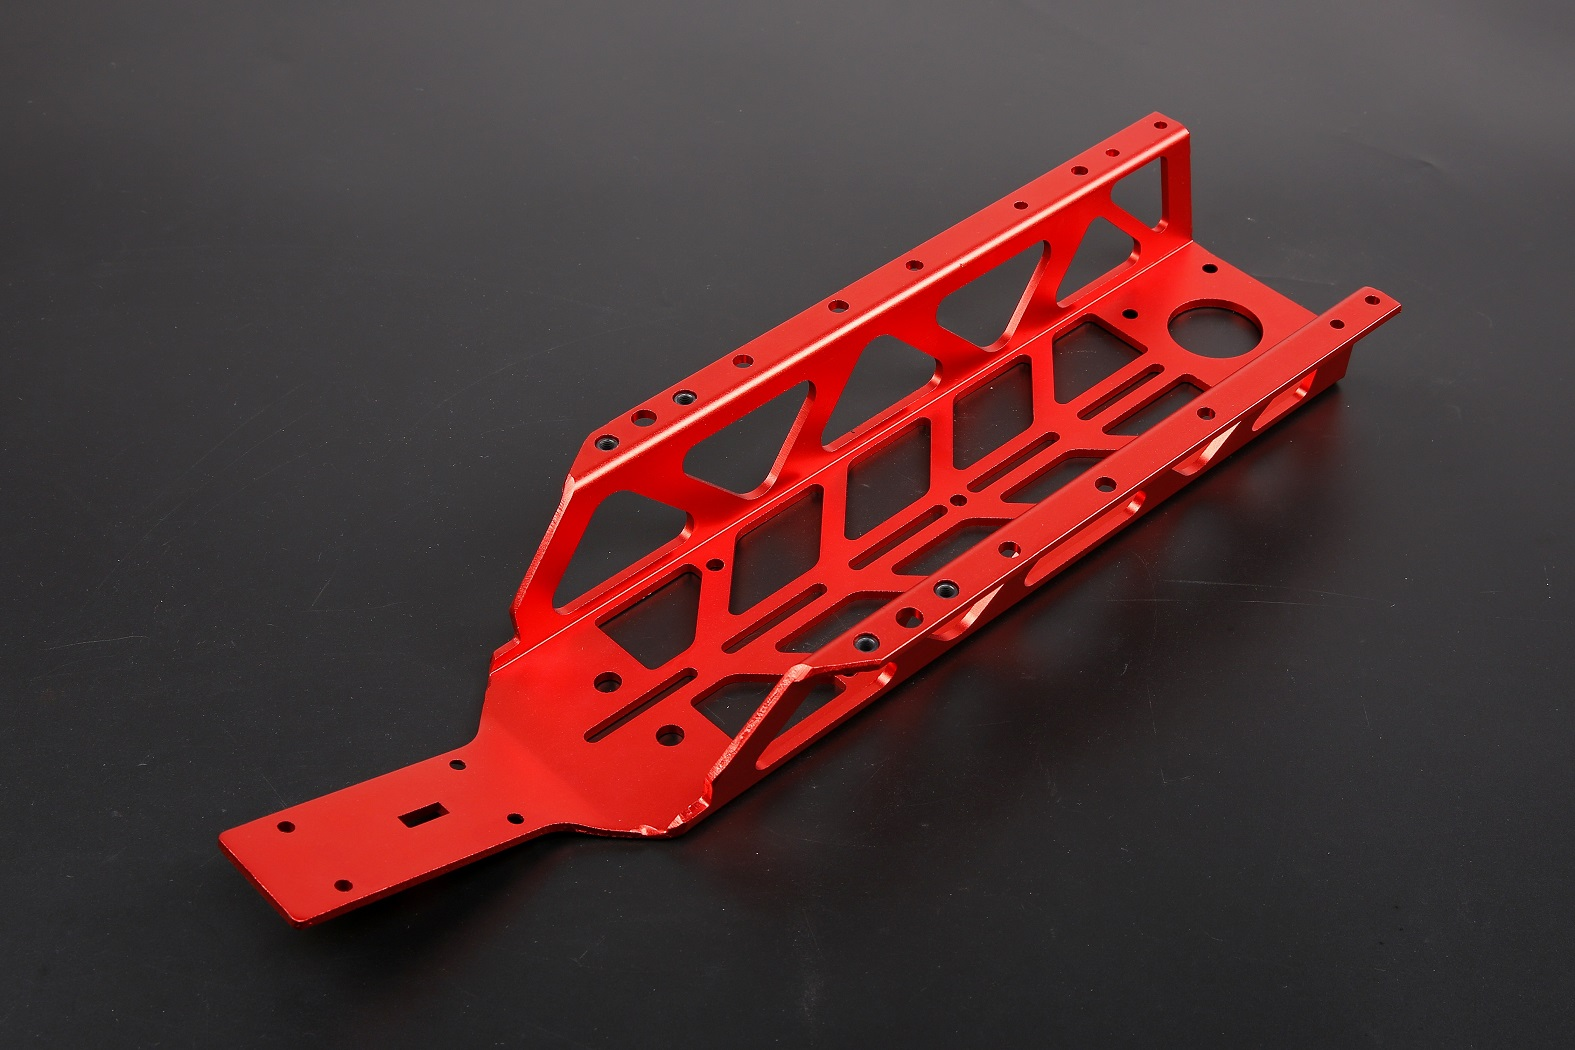 ROVAN 1/5 RC Car Upgrade Parts Baja CNC Steal Light Hollow Chassis Main Frame Chassis For HPI KM Baja 5B SS 5T 5SC piston kit 36mm for hpi baja km cy sikk king chung yang ddm losi rovan zenoah g290rc 29cc 1 5 1 5 r c 5b 5t 5sc rc ring pin clip